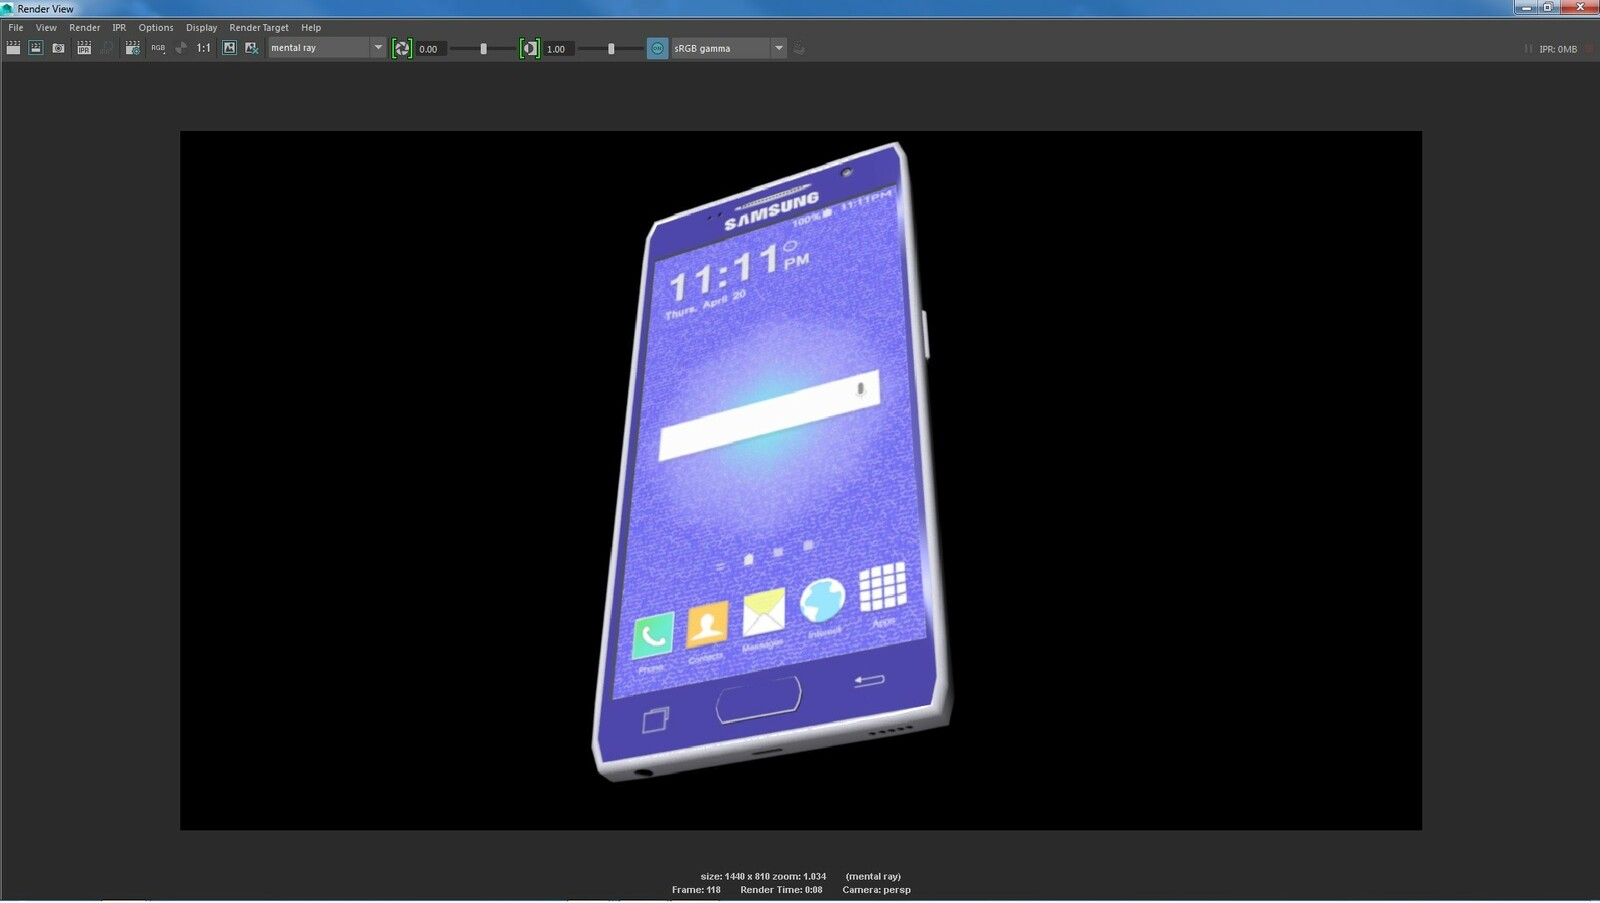 The final 3D model of the Samsung Galaxy smart phone